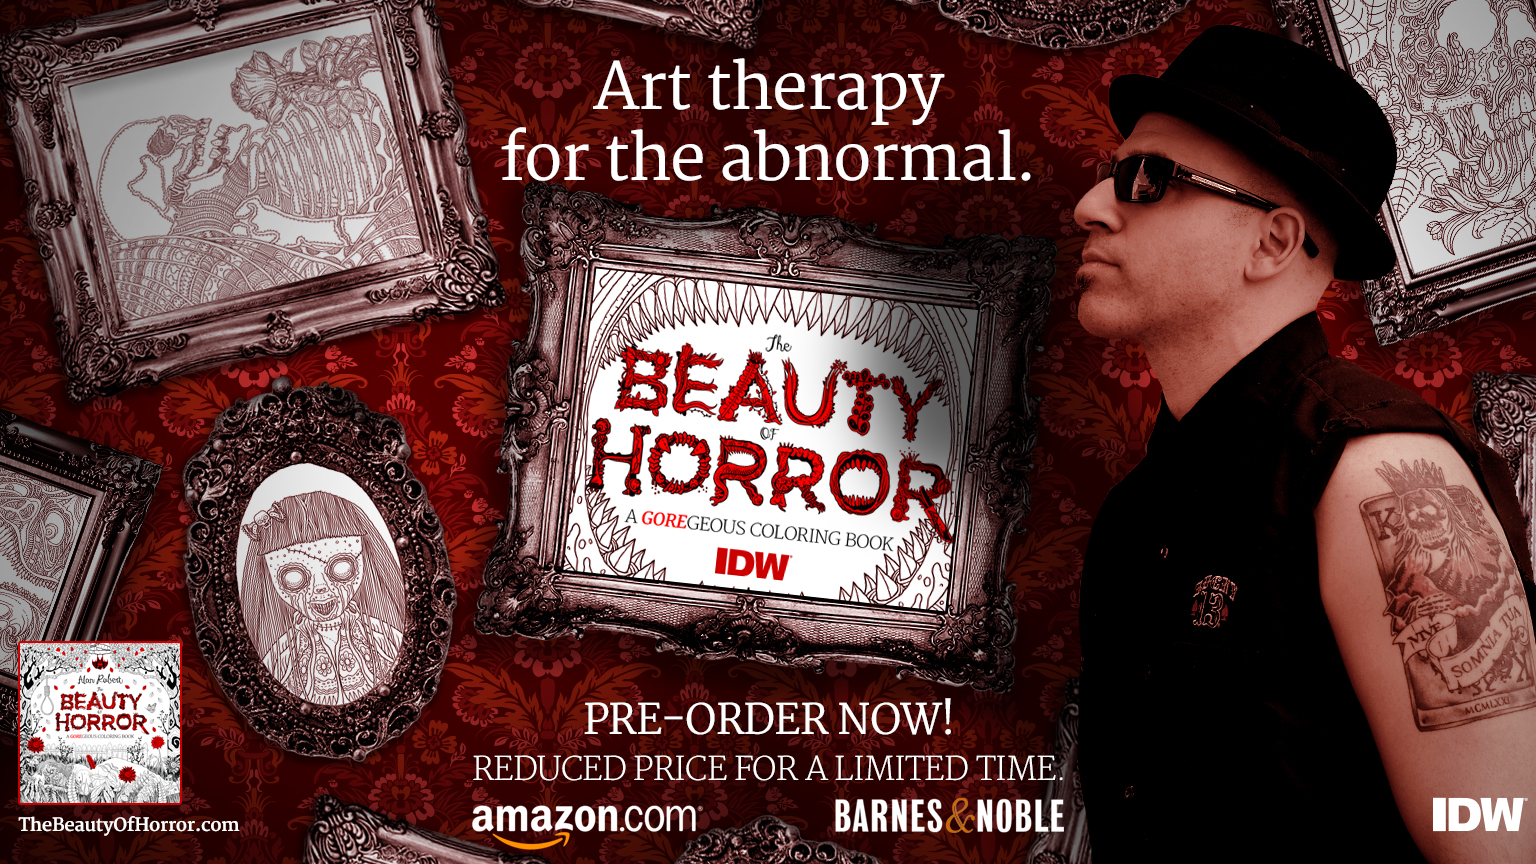 The-Beauty-of-Horror-Alan-Robert-Ad-with-text